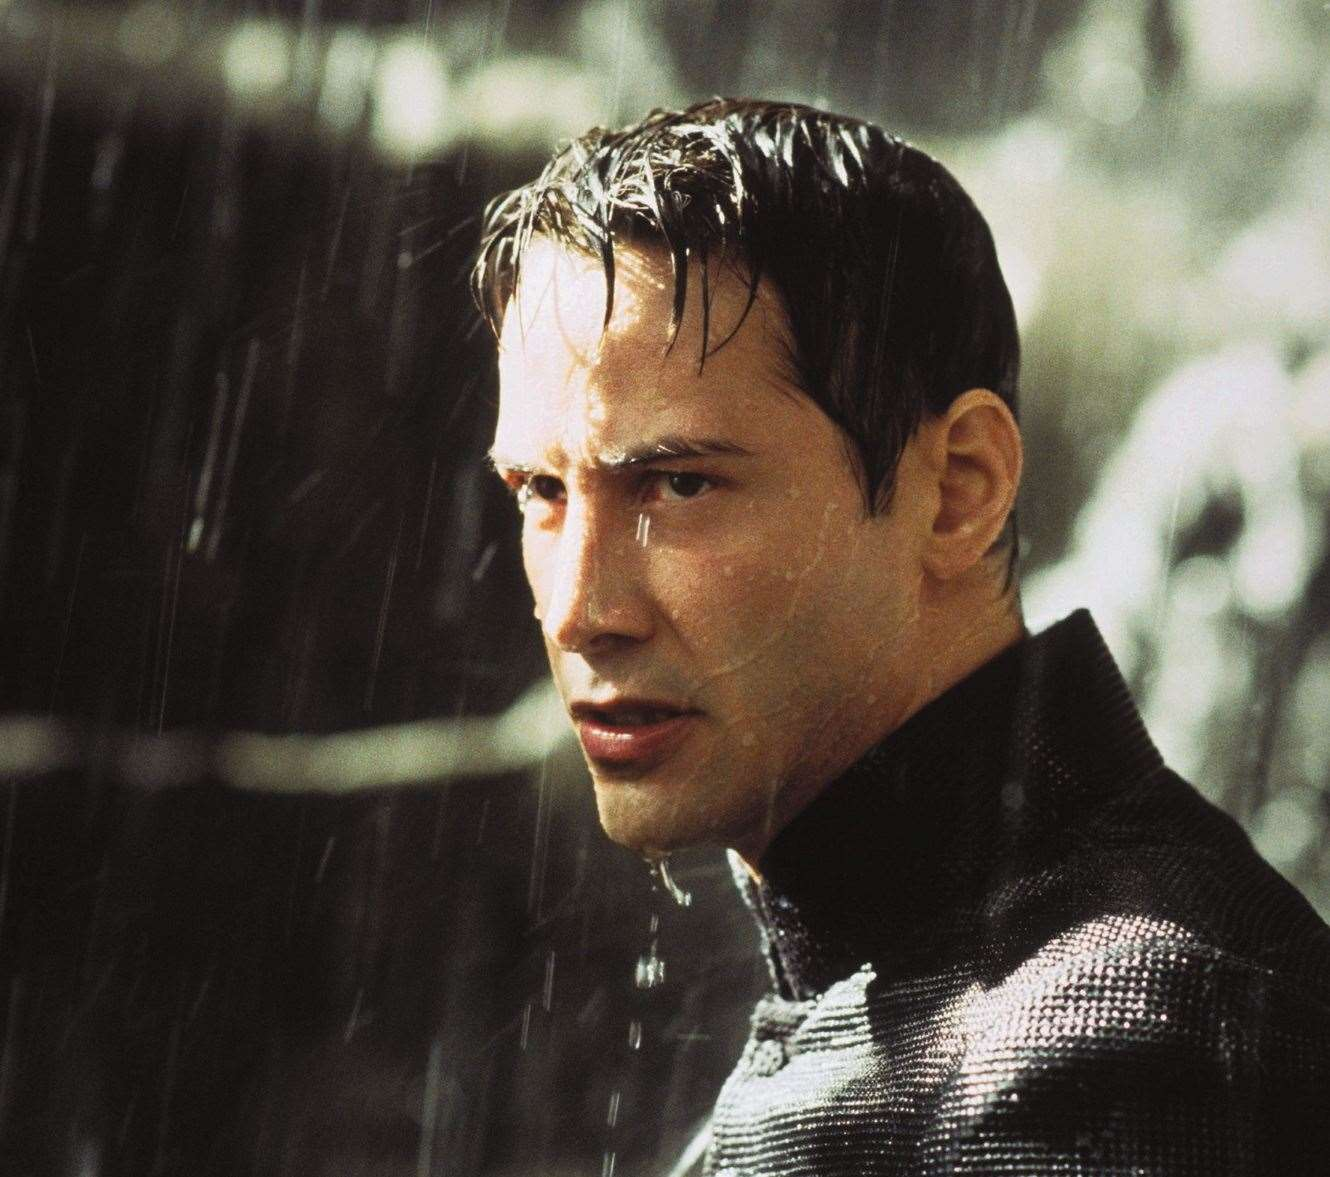 Keanu Reeves in one of the trilogy, The Matrix Revolutions by Warner Bros